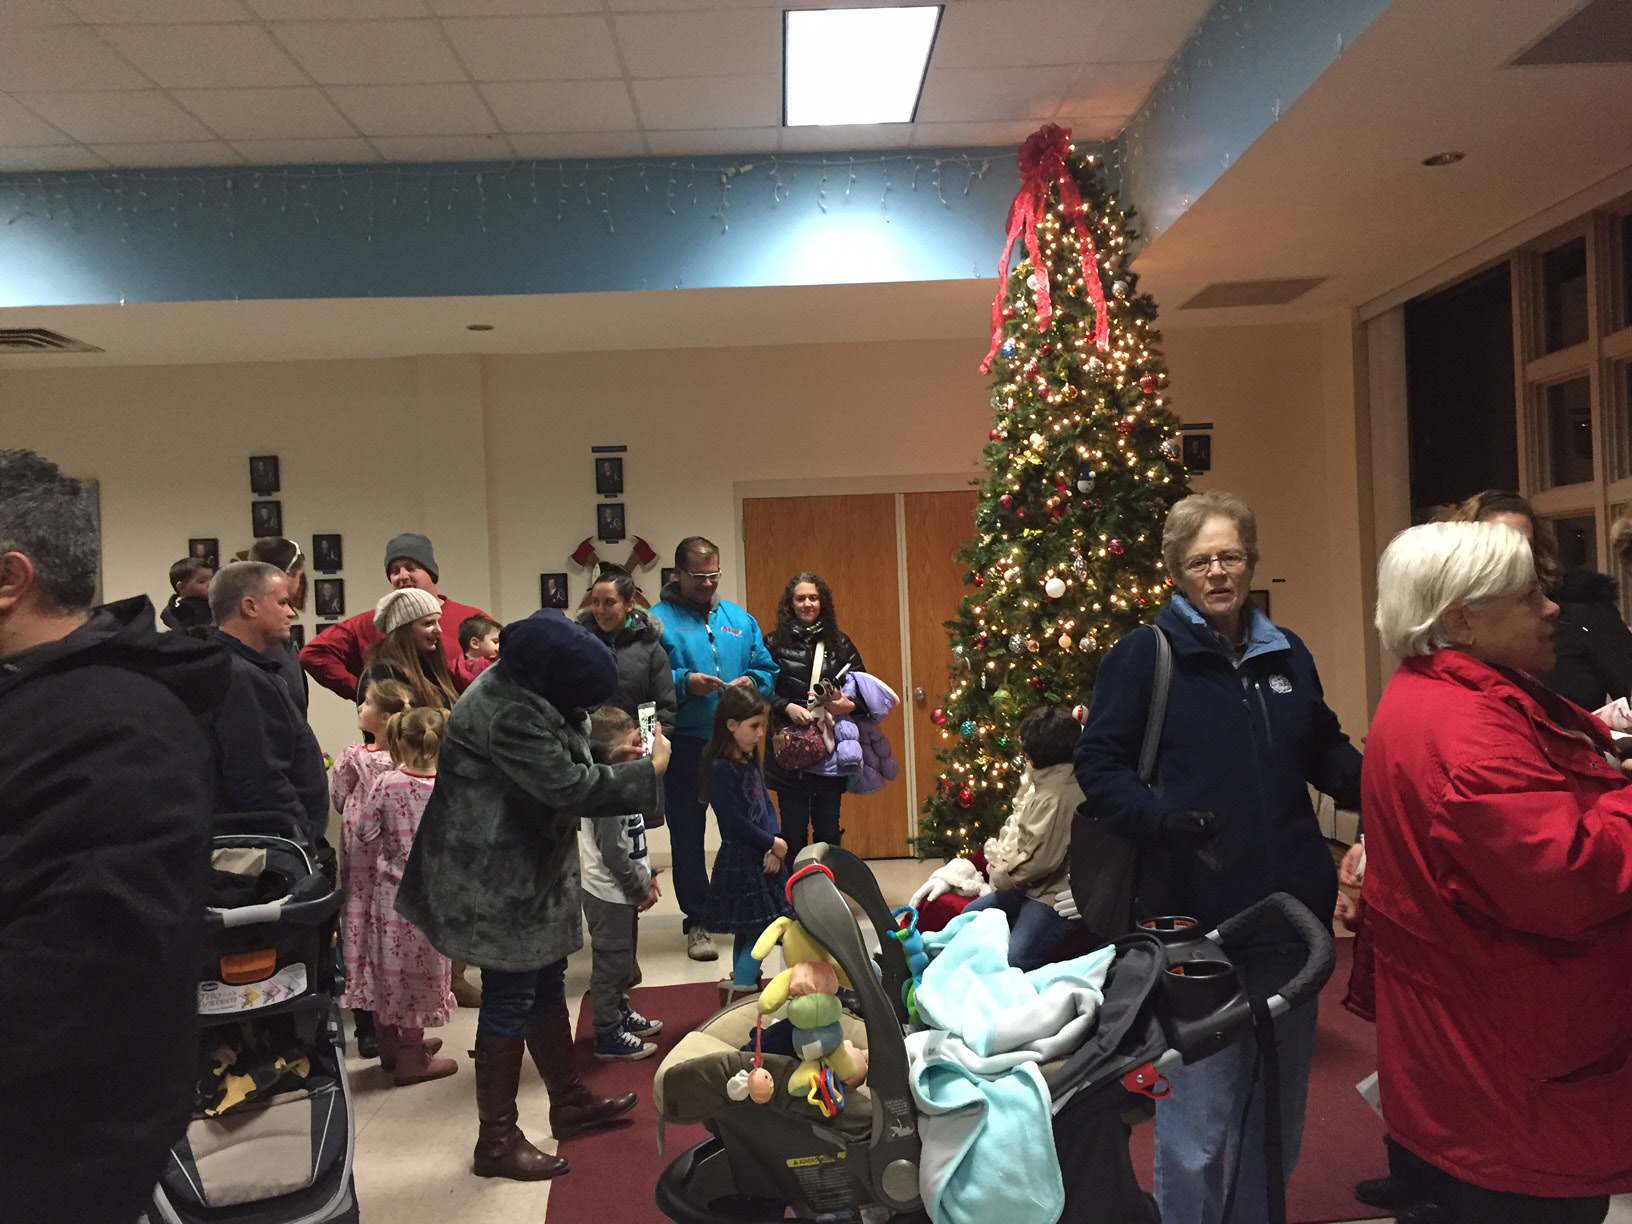 Santa visit at the Plainville tree lighting event, Thursday, Dec. 1, 2016. |Ashley Kus, The Plainville Citizen.